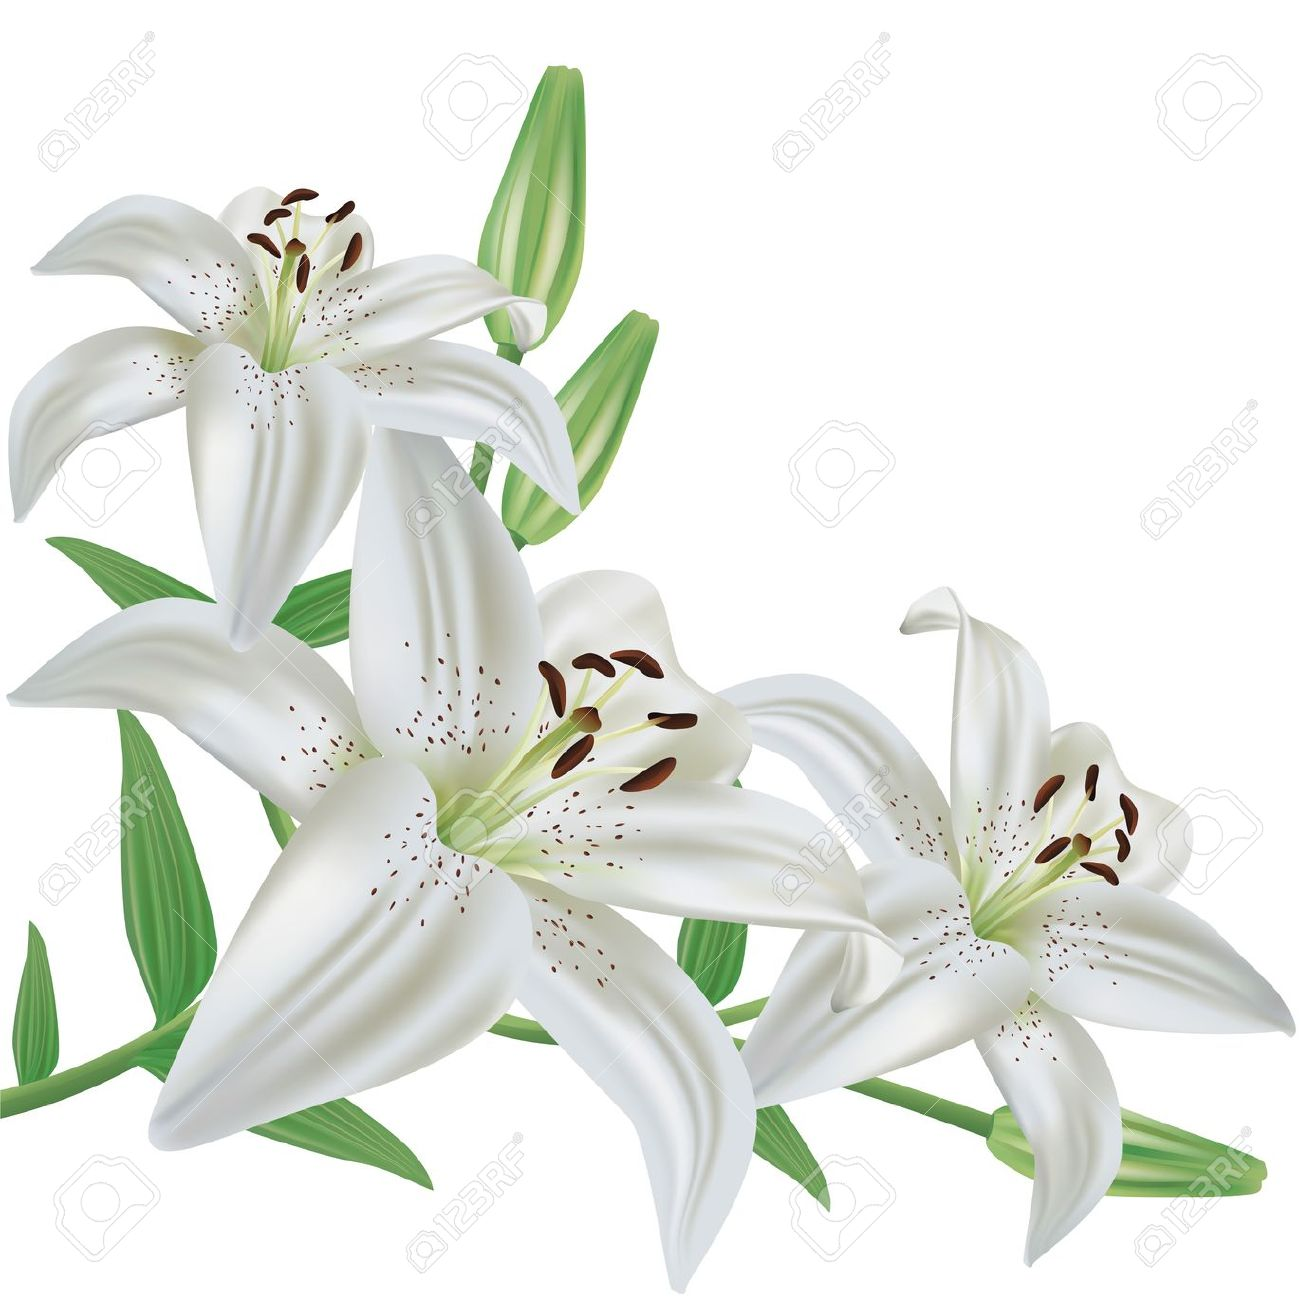 1000+ images about LILY FLOWER on Pinterest.